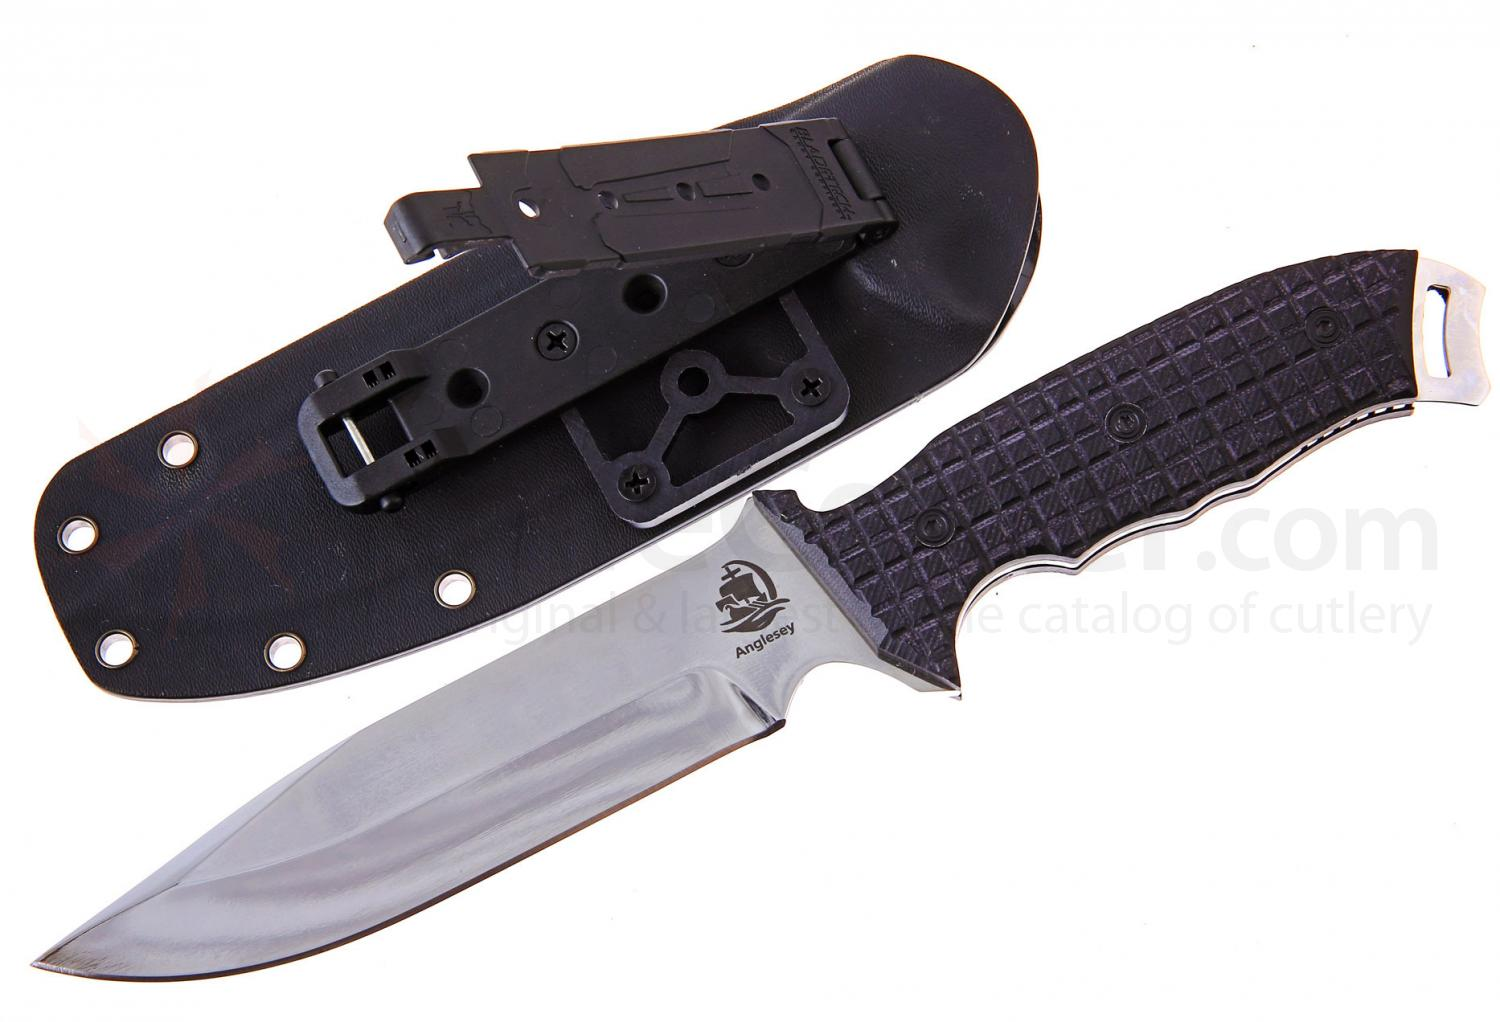 Anglesey Knives Rival Polished Fixed 6 inch 440C Drop Point Blade, G10 Handle, Kydex Sheath